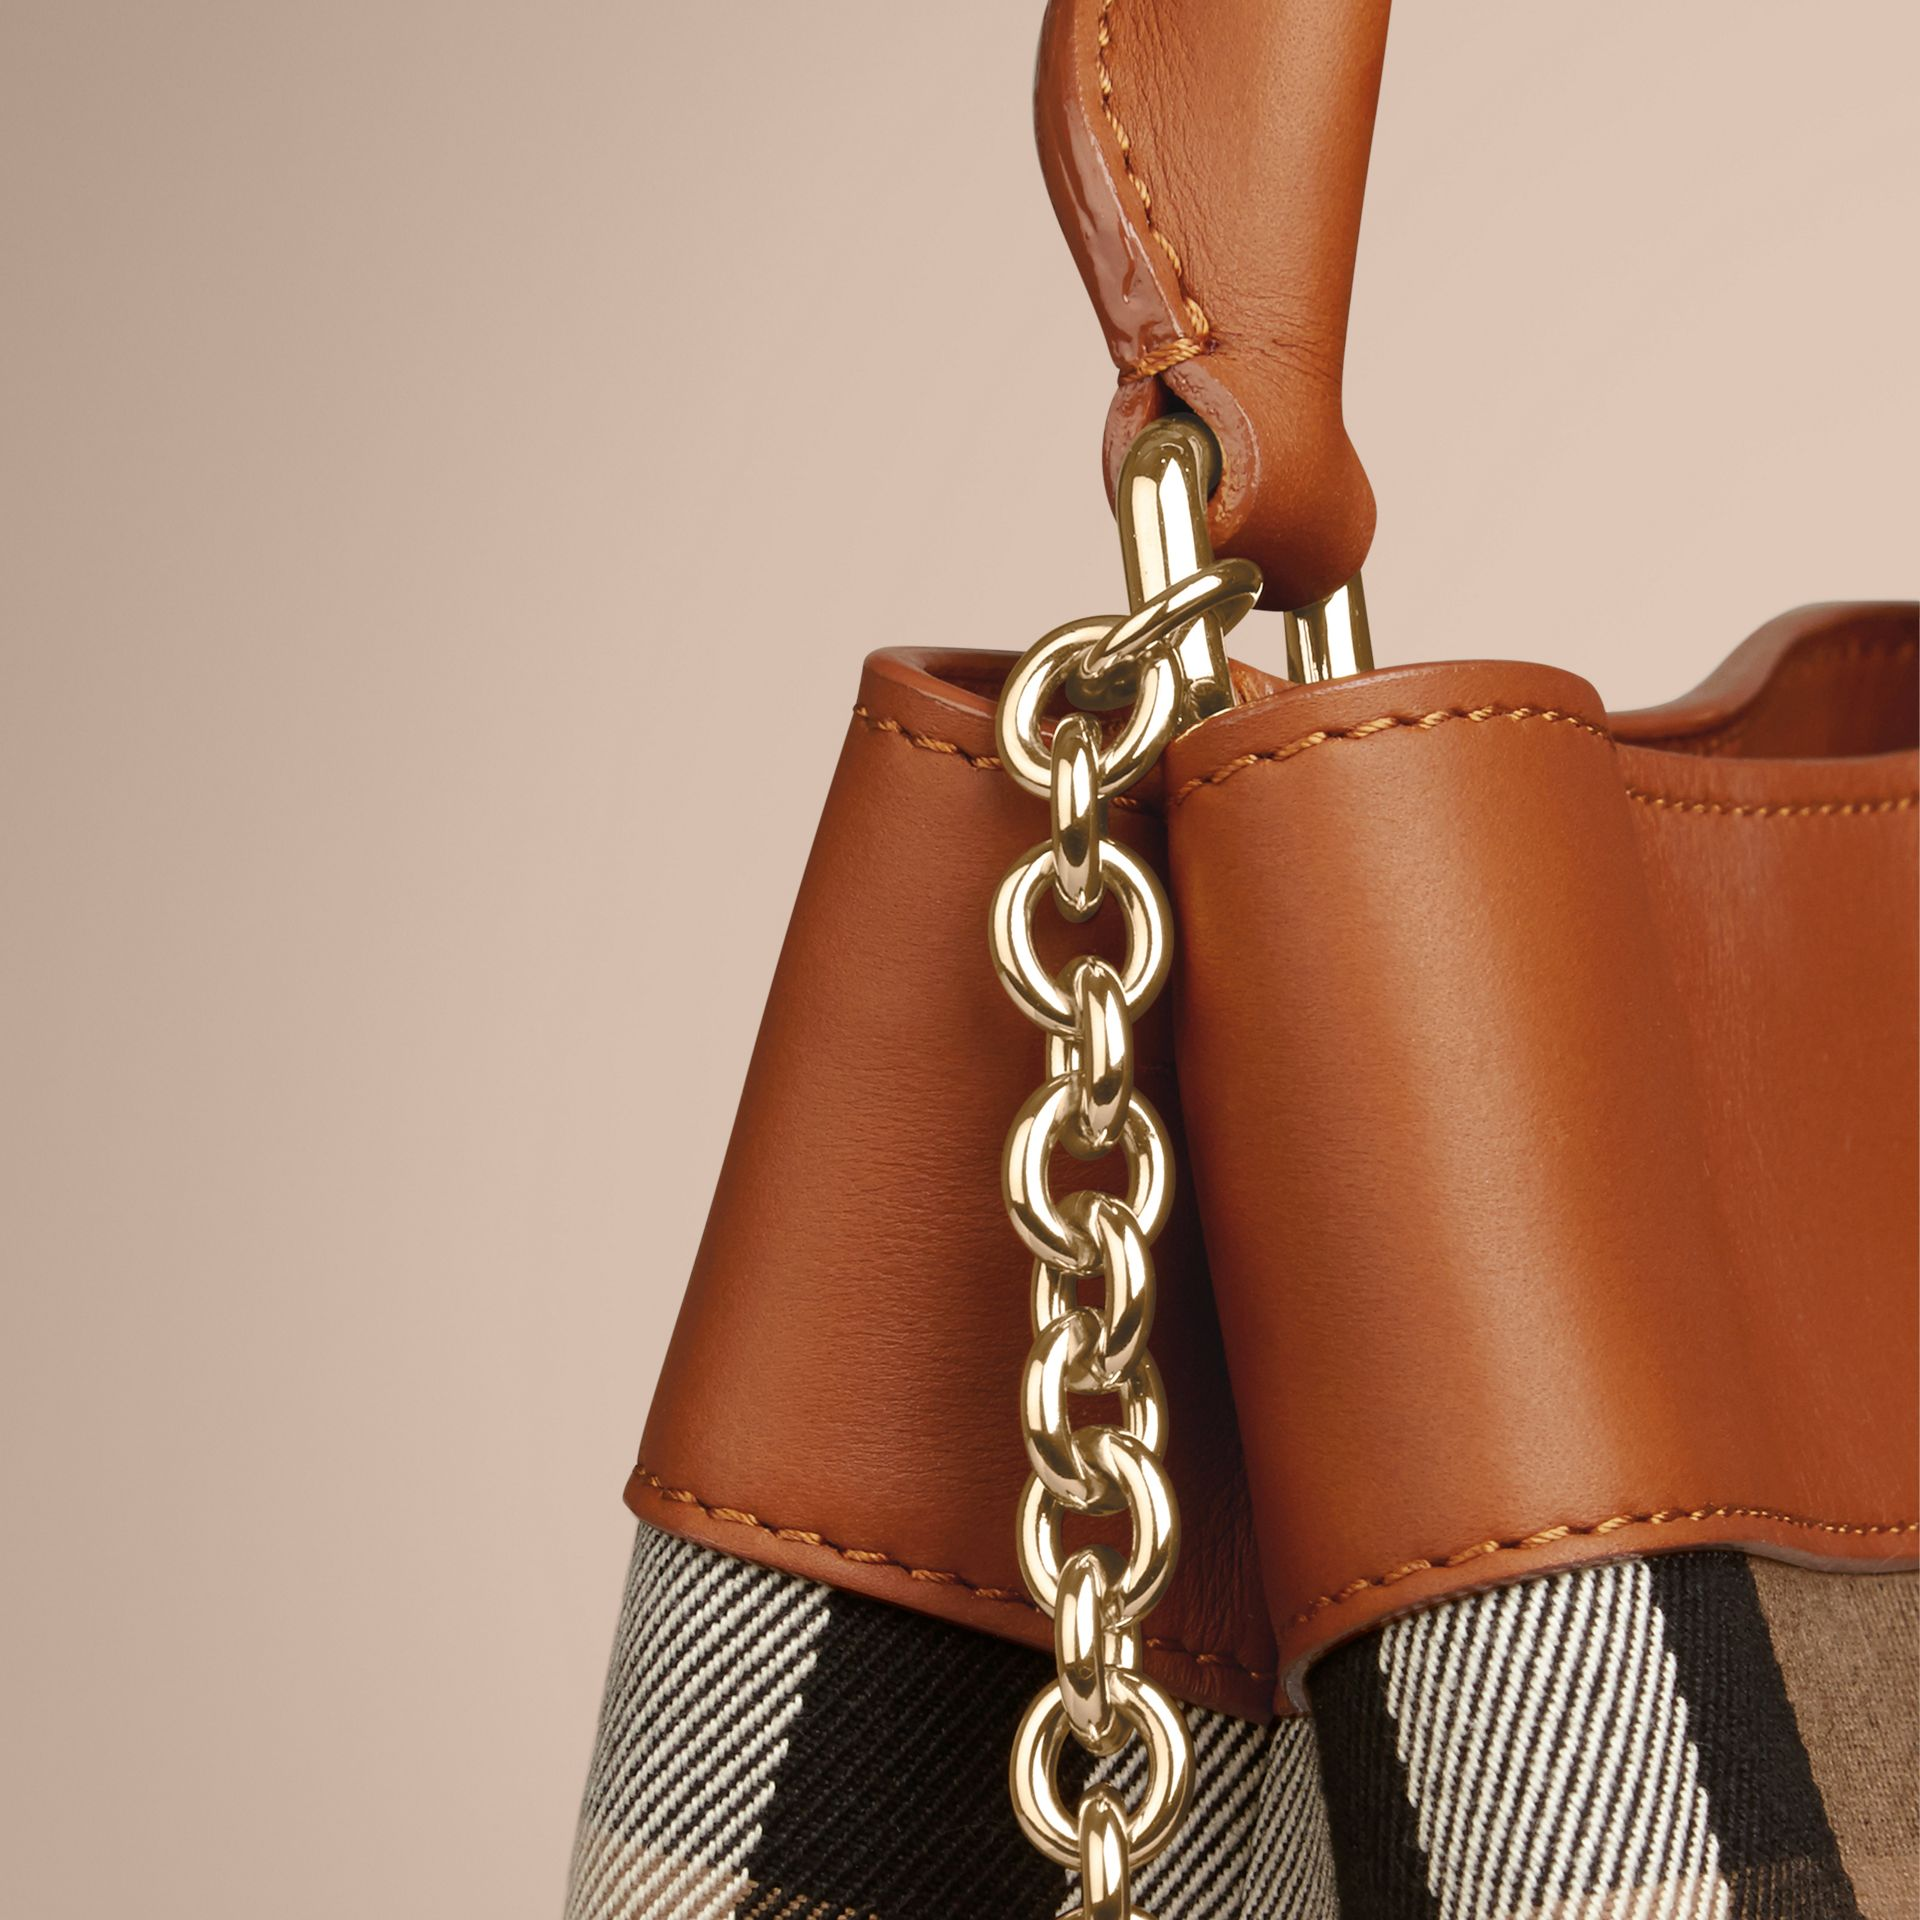 Toffee clair Petit sac Burberry Bucket en coton House check et cuir Toffee Clair - photo de la galerie 6